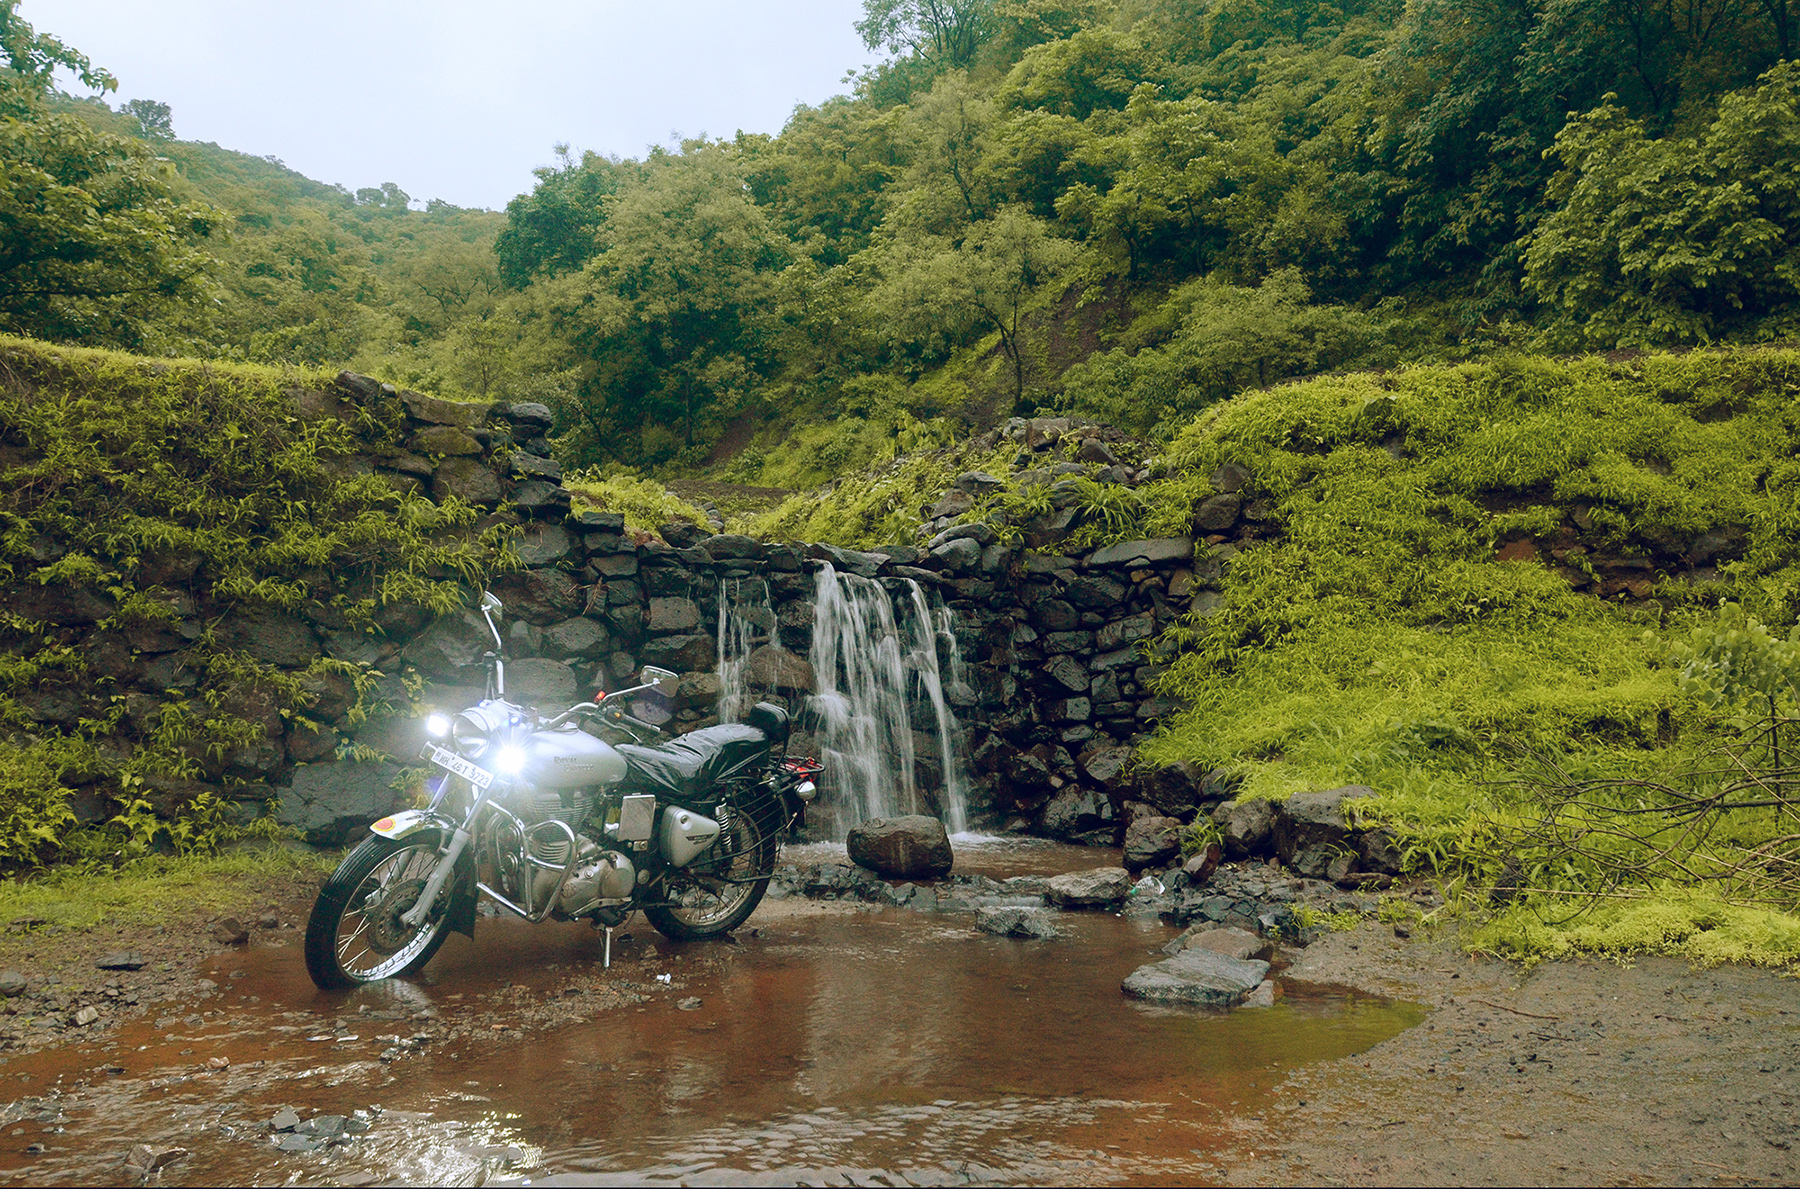 In an attempt to beat the heat, escape into wilderness. Shot on a bike trip to a nearby forest area. We bathed under the natural water stream to beat the heat.